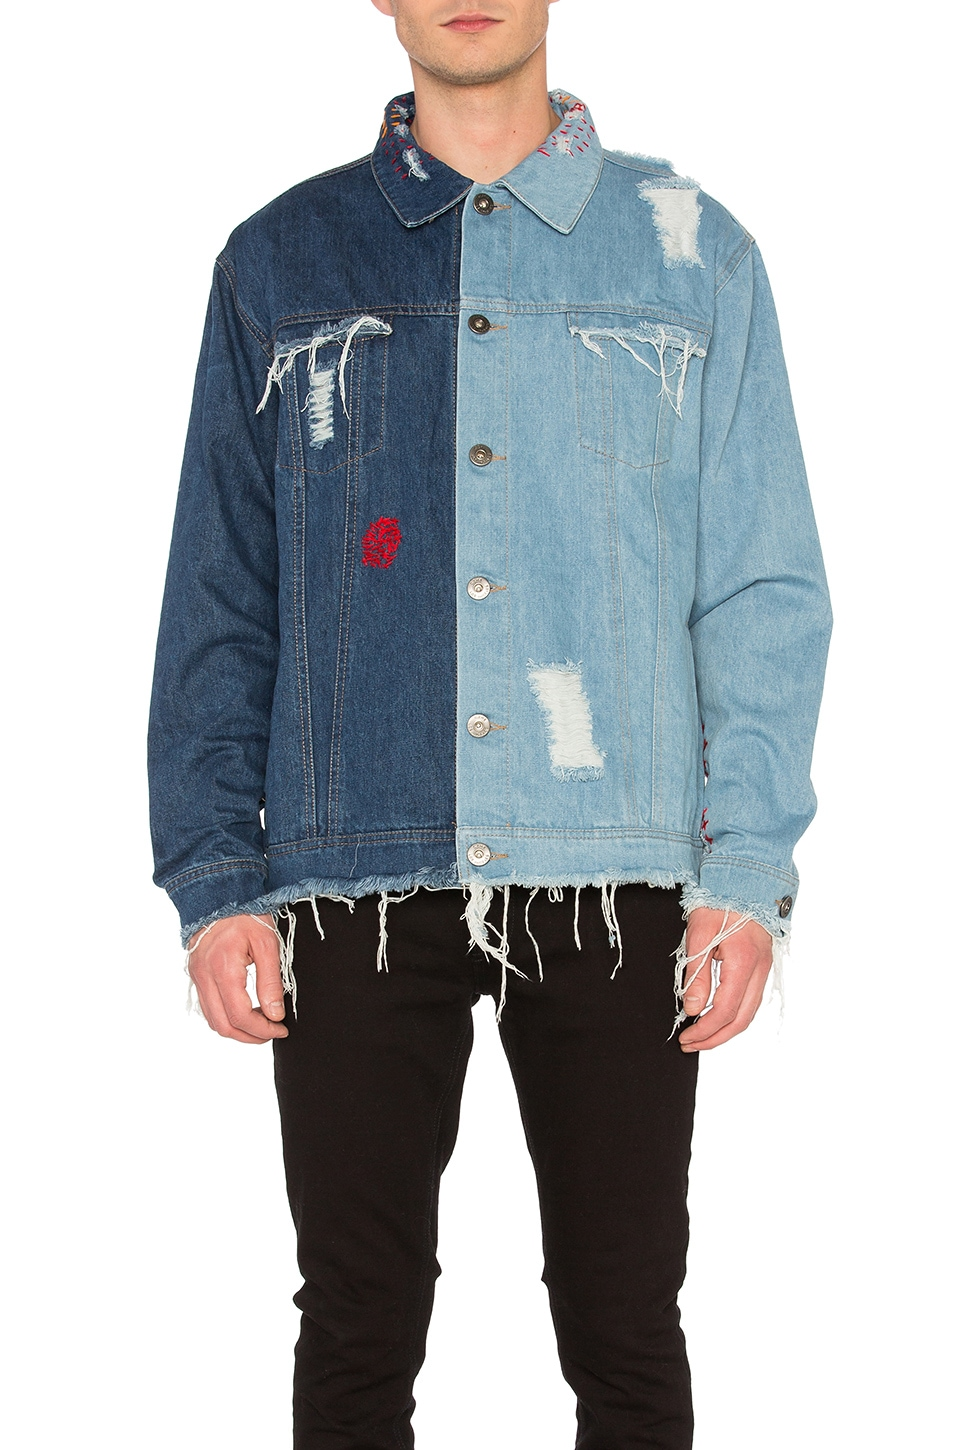 Contrast Distressed Denim Jacket by C2H4